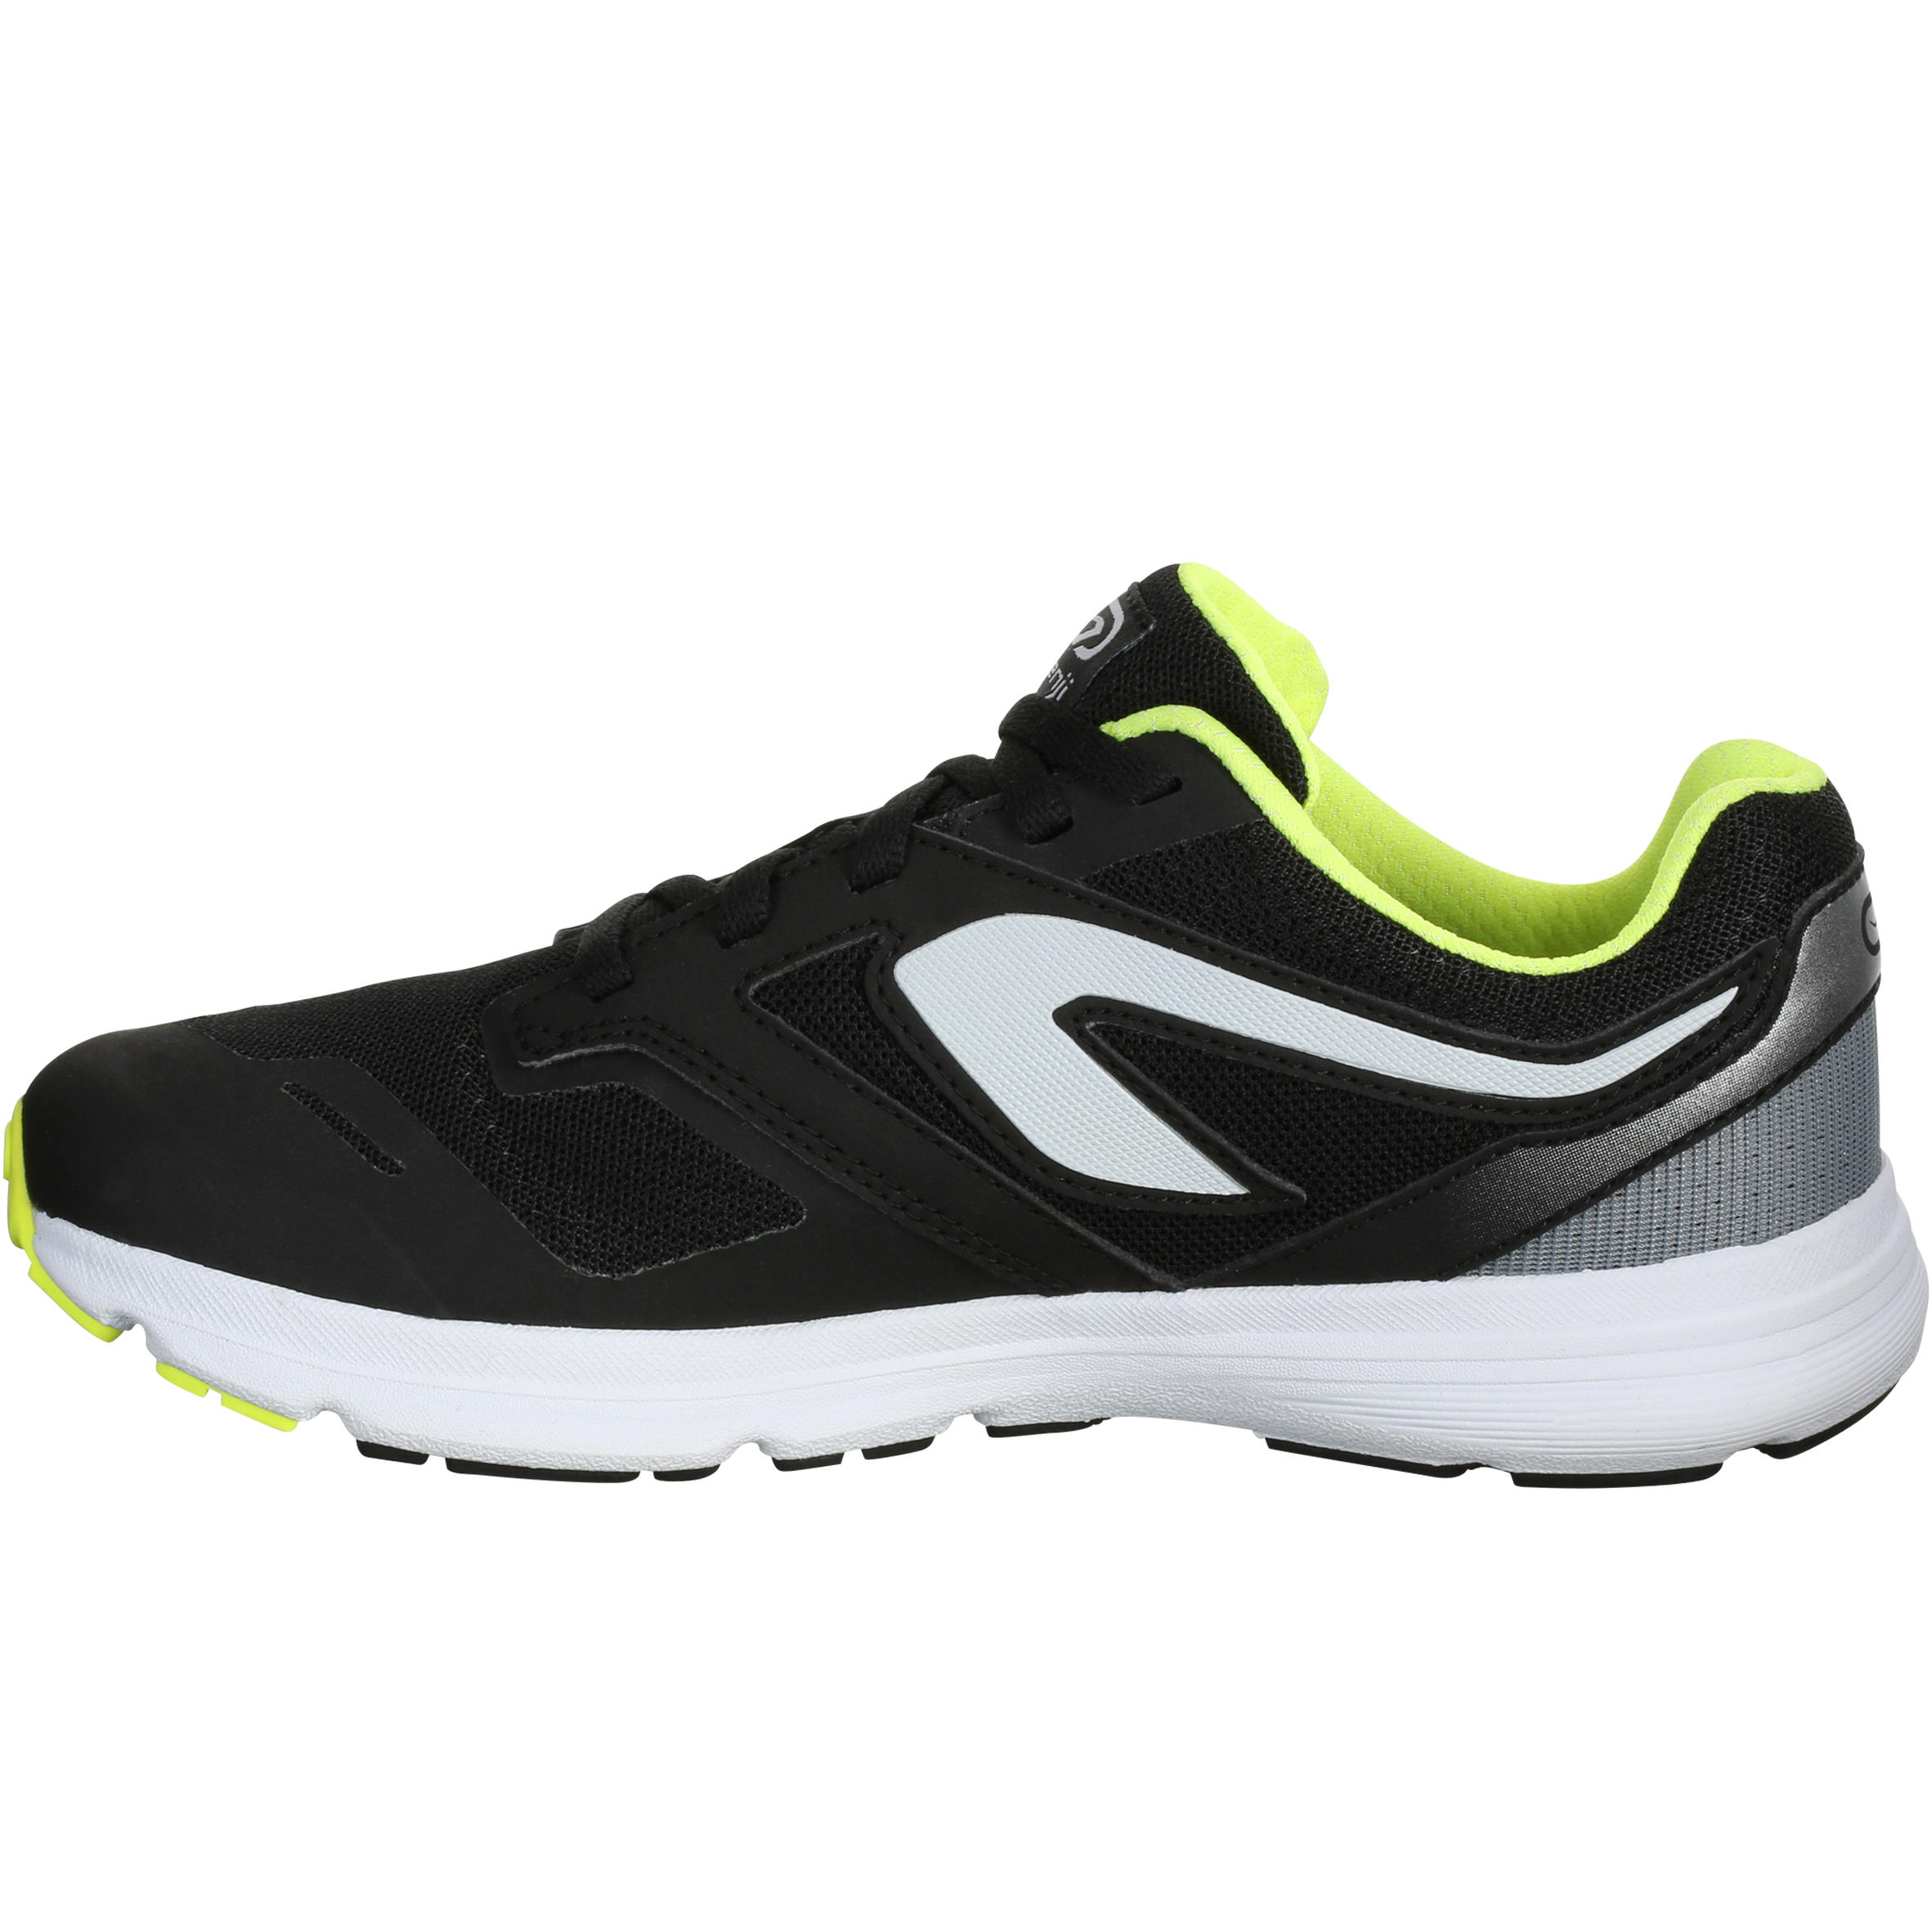 Kiprun Children's Running Shoes - Black